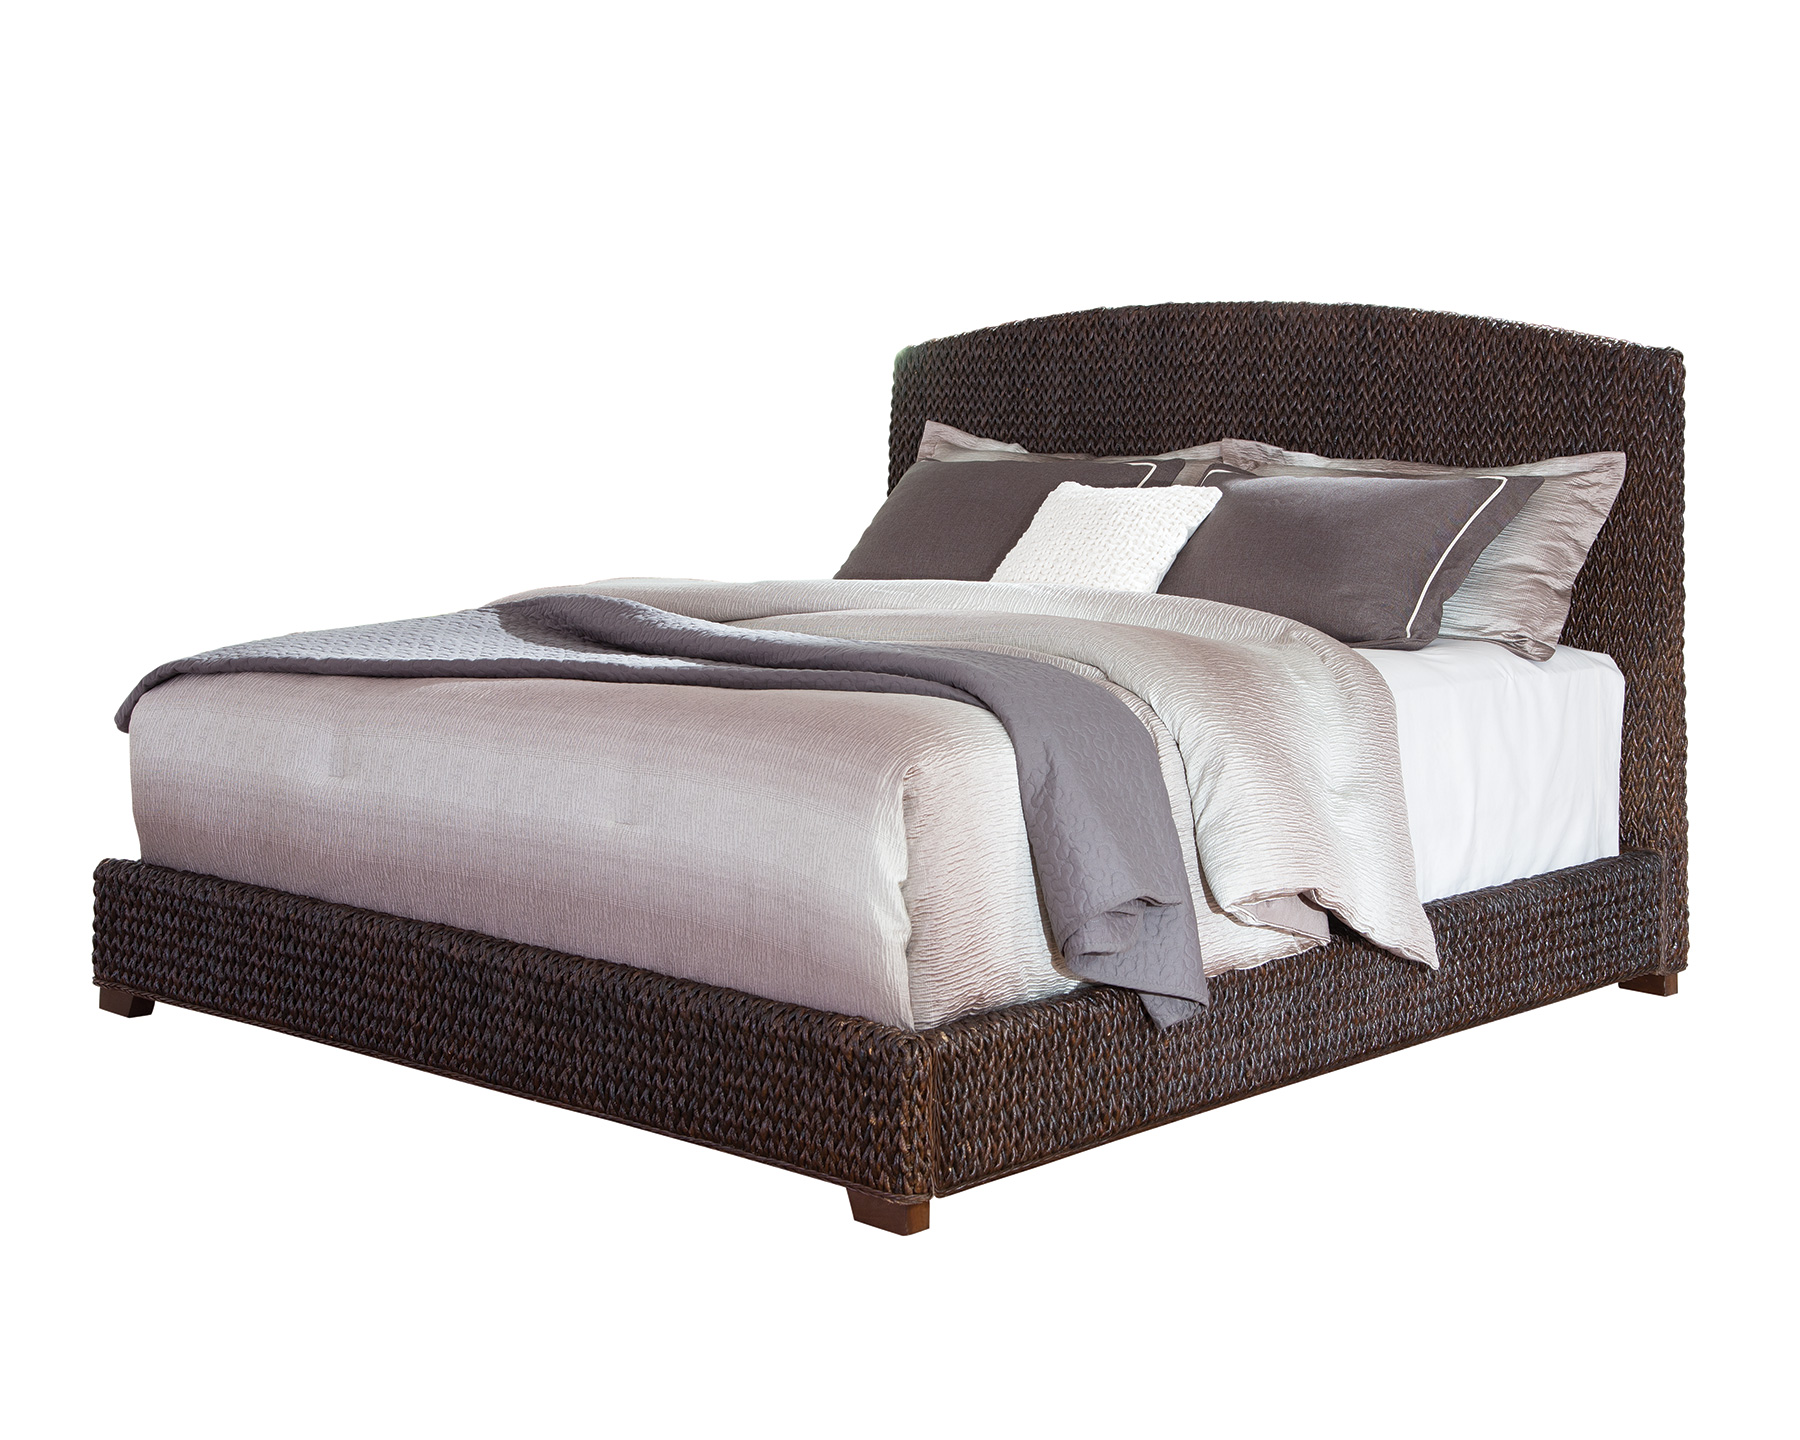 Laughton Woven Banana Leaf California King Bed Quality Furniture At Affordable Prices In